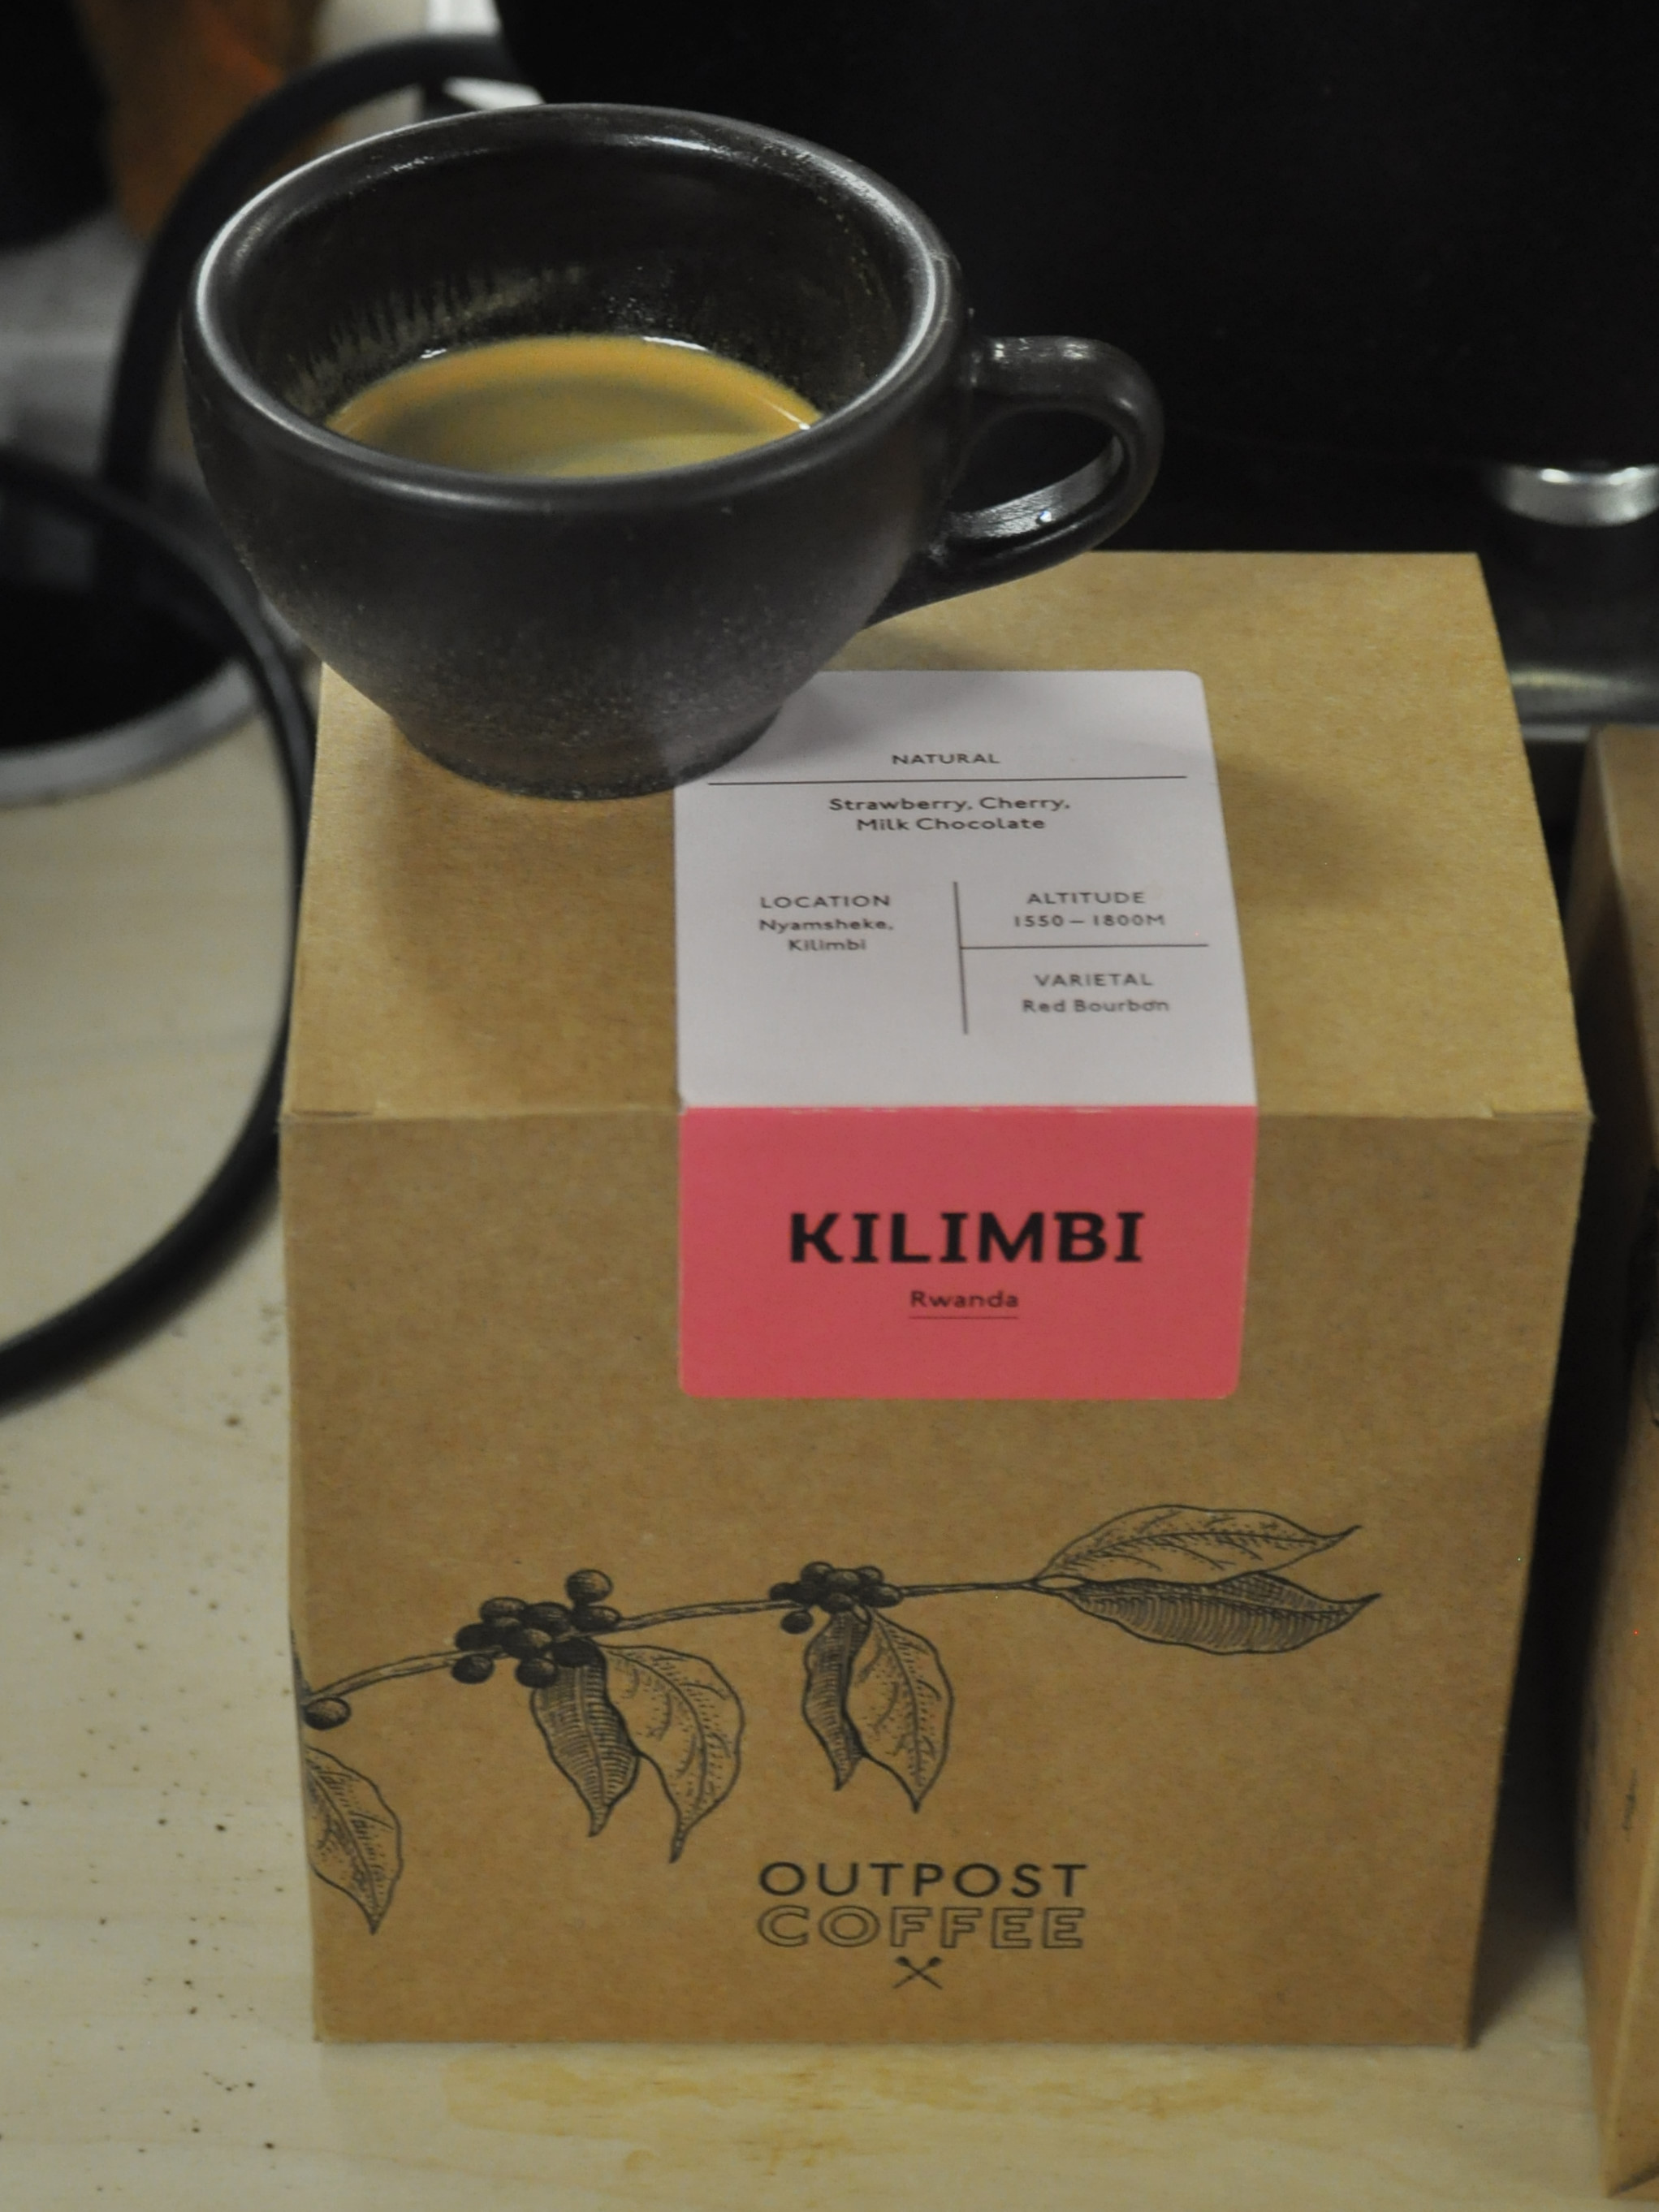 An espresso from Outpost Coffee's Kilimbi from Rwanda in my Kaffeeform recycled cup at the London Coffee Festival.